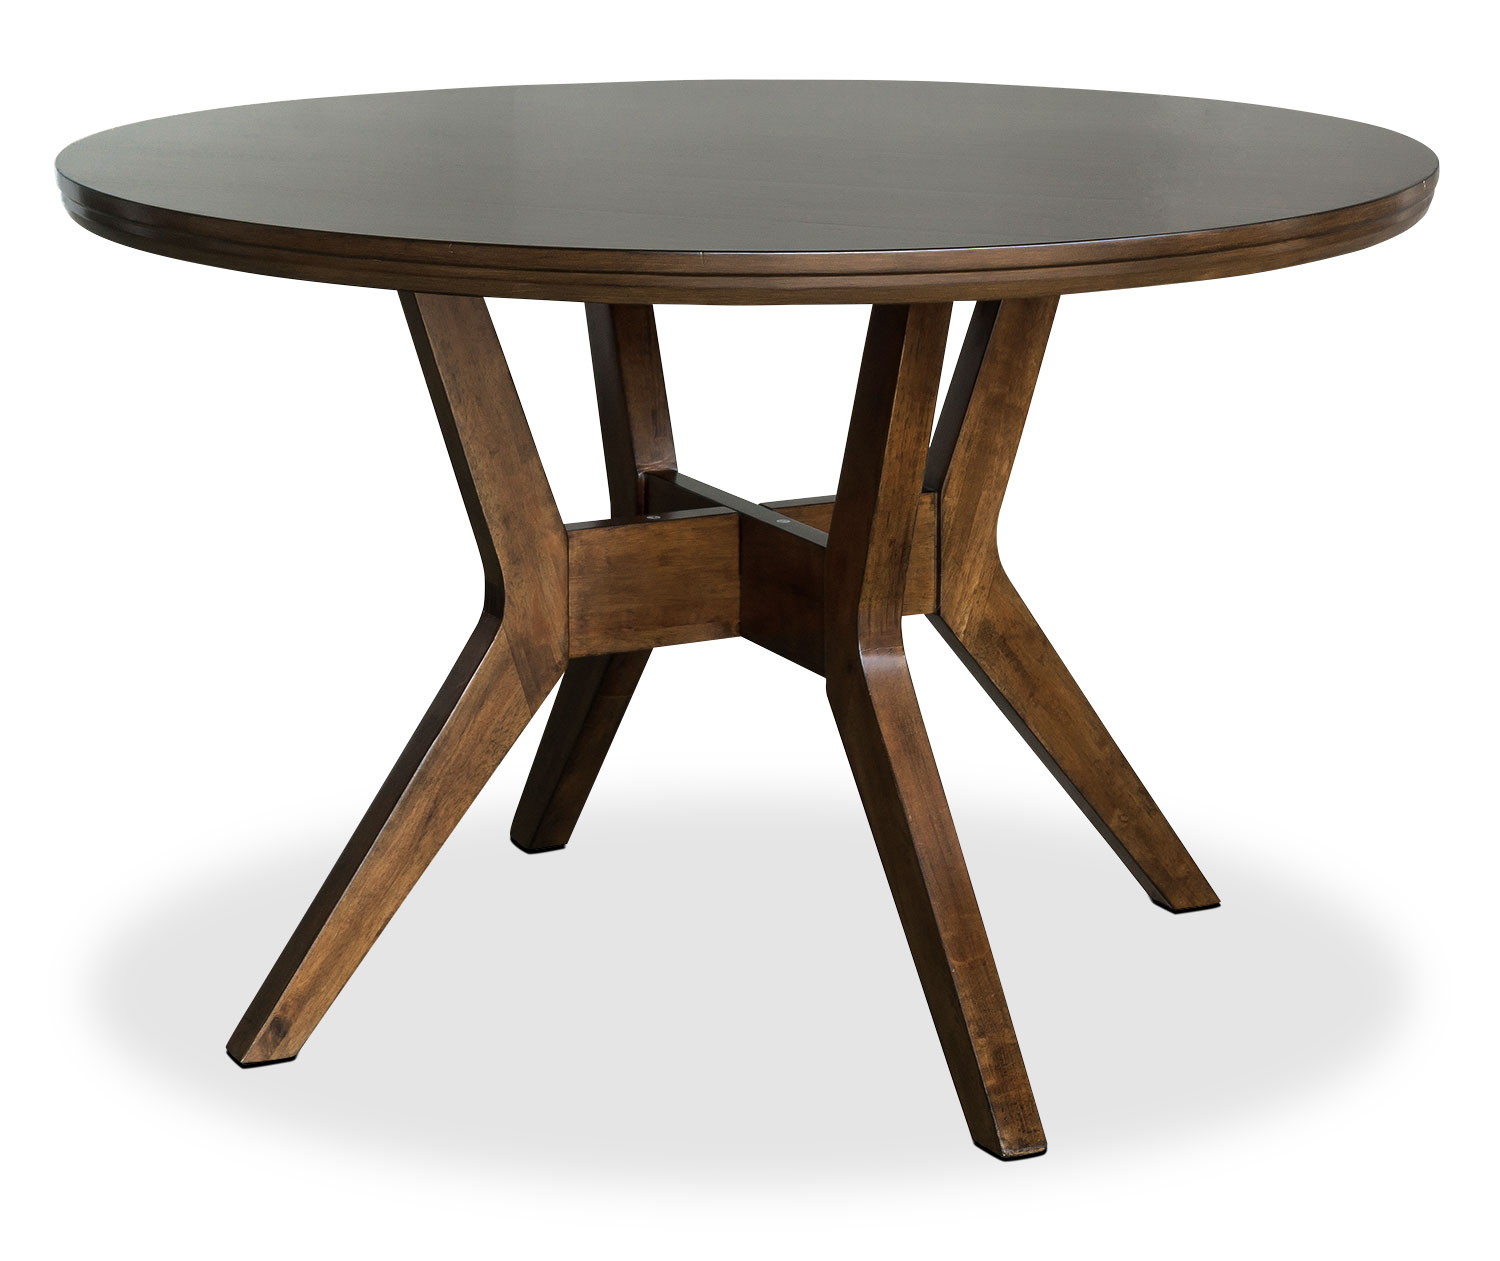 Round Dining Table chelsea round dining table | the brick